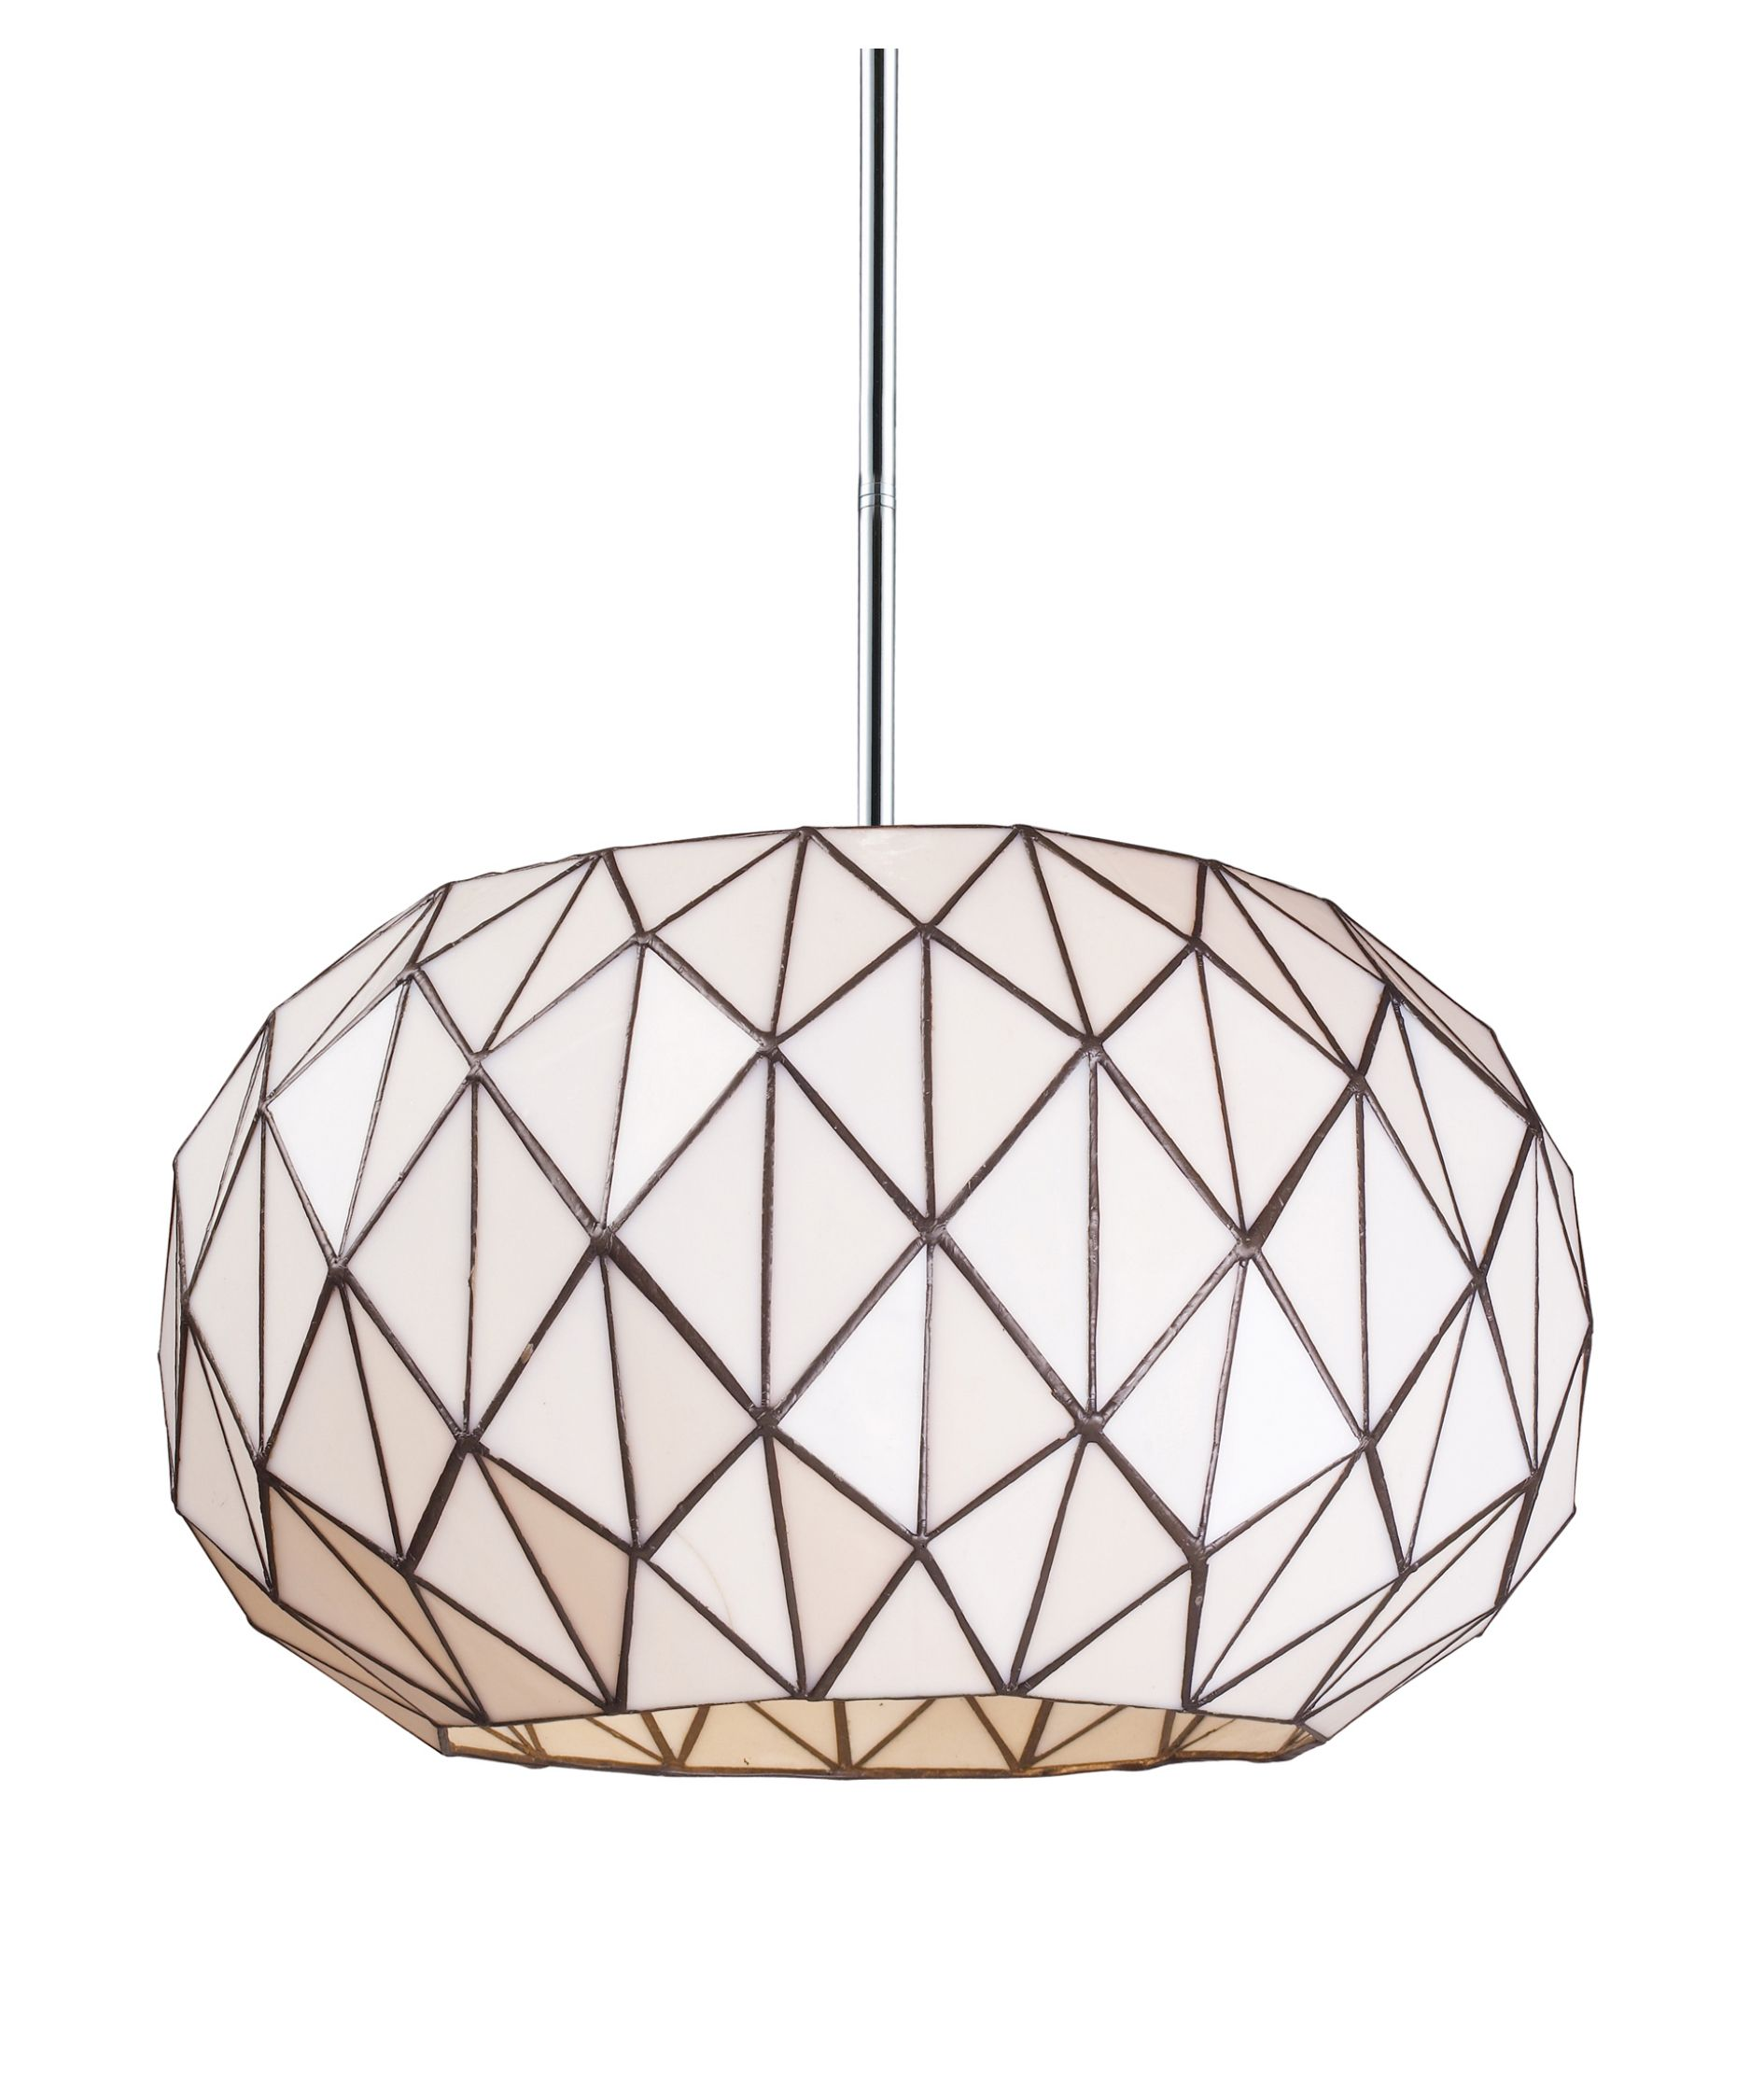 Cool Vintage Stained Glass Hanging Lamp Shade Fixtures Light Construct Pendant Lighting For Kitchen